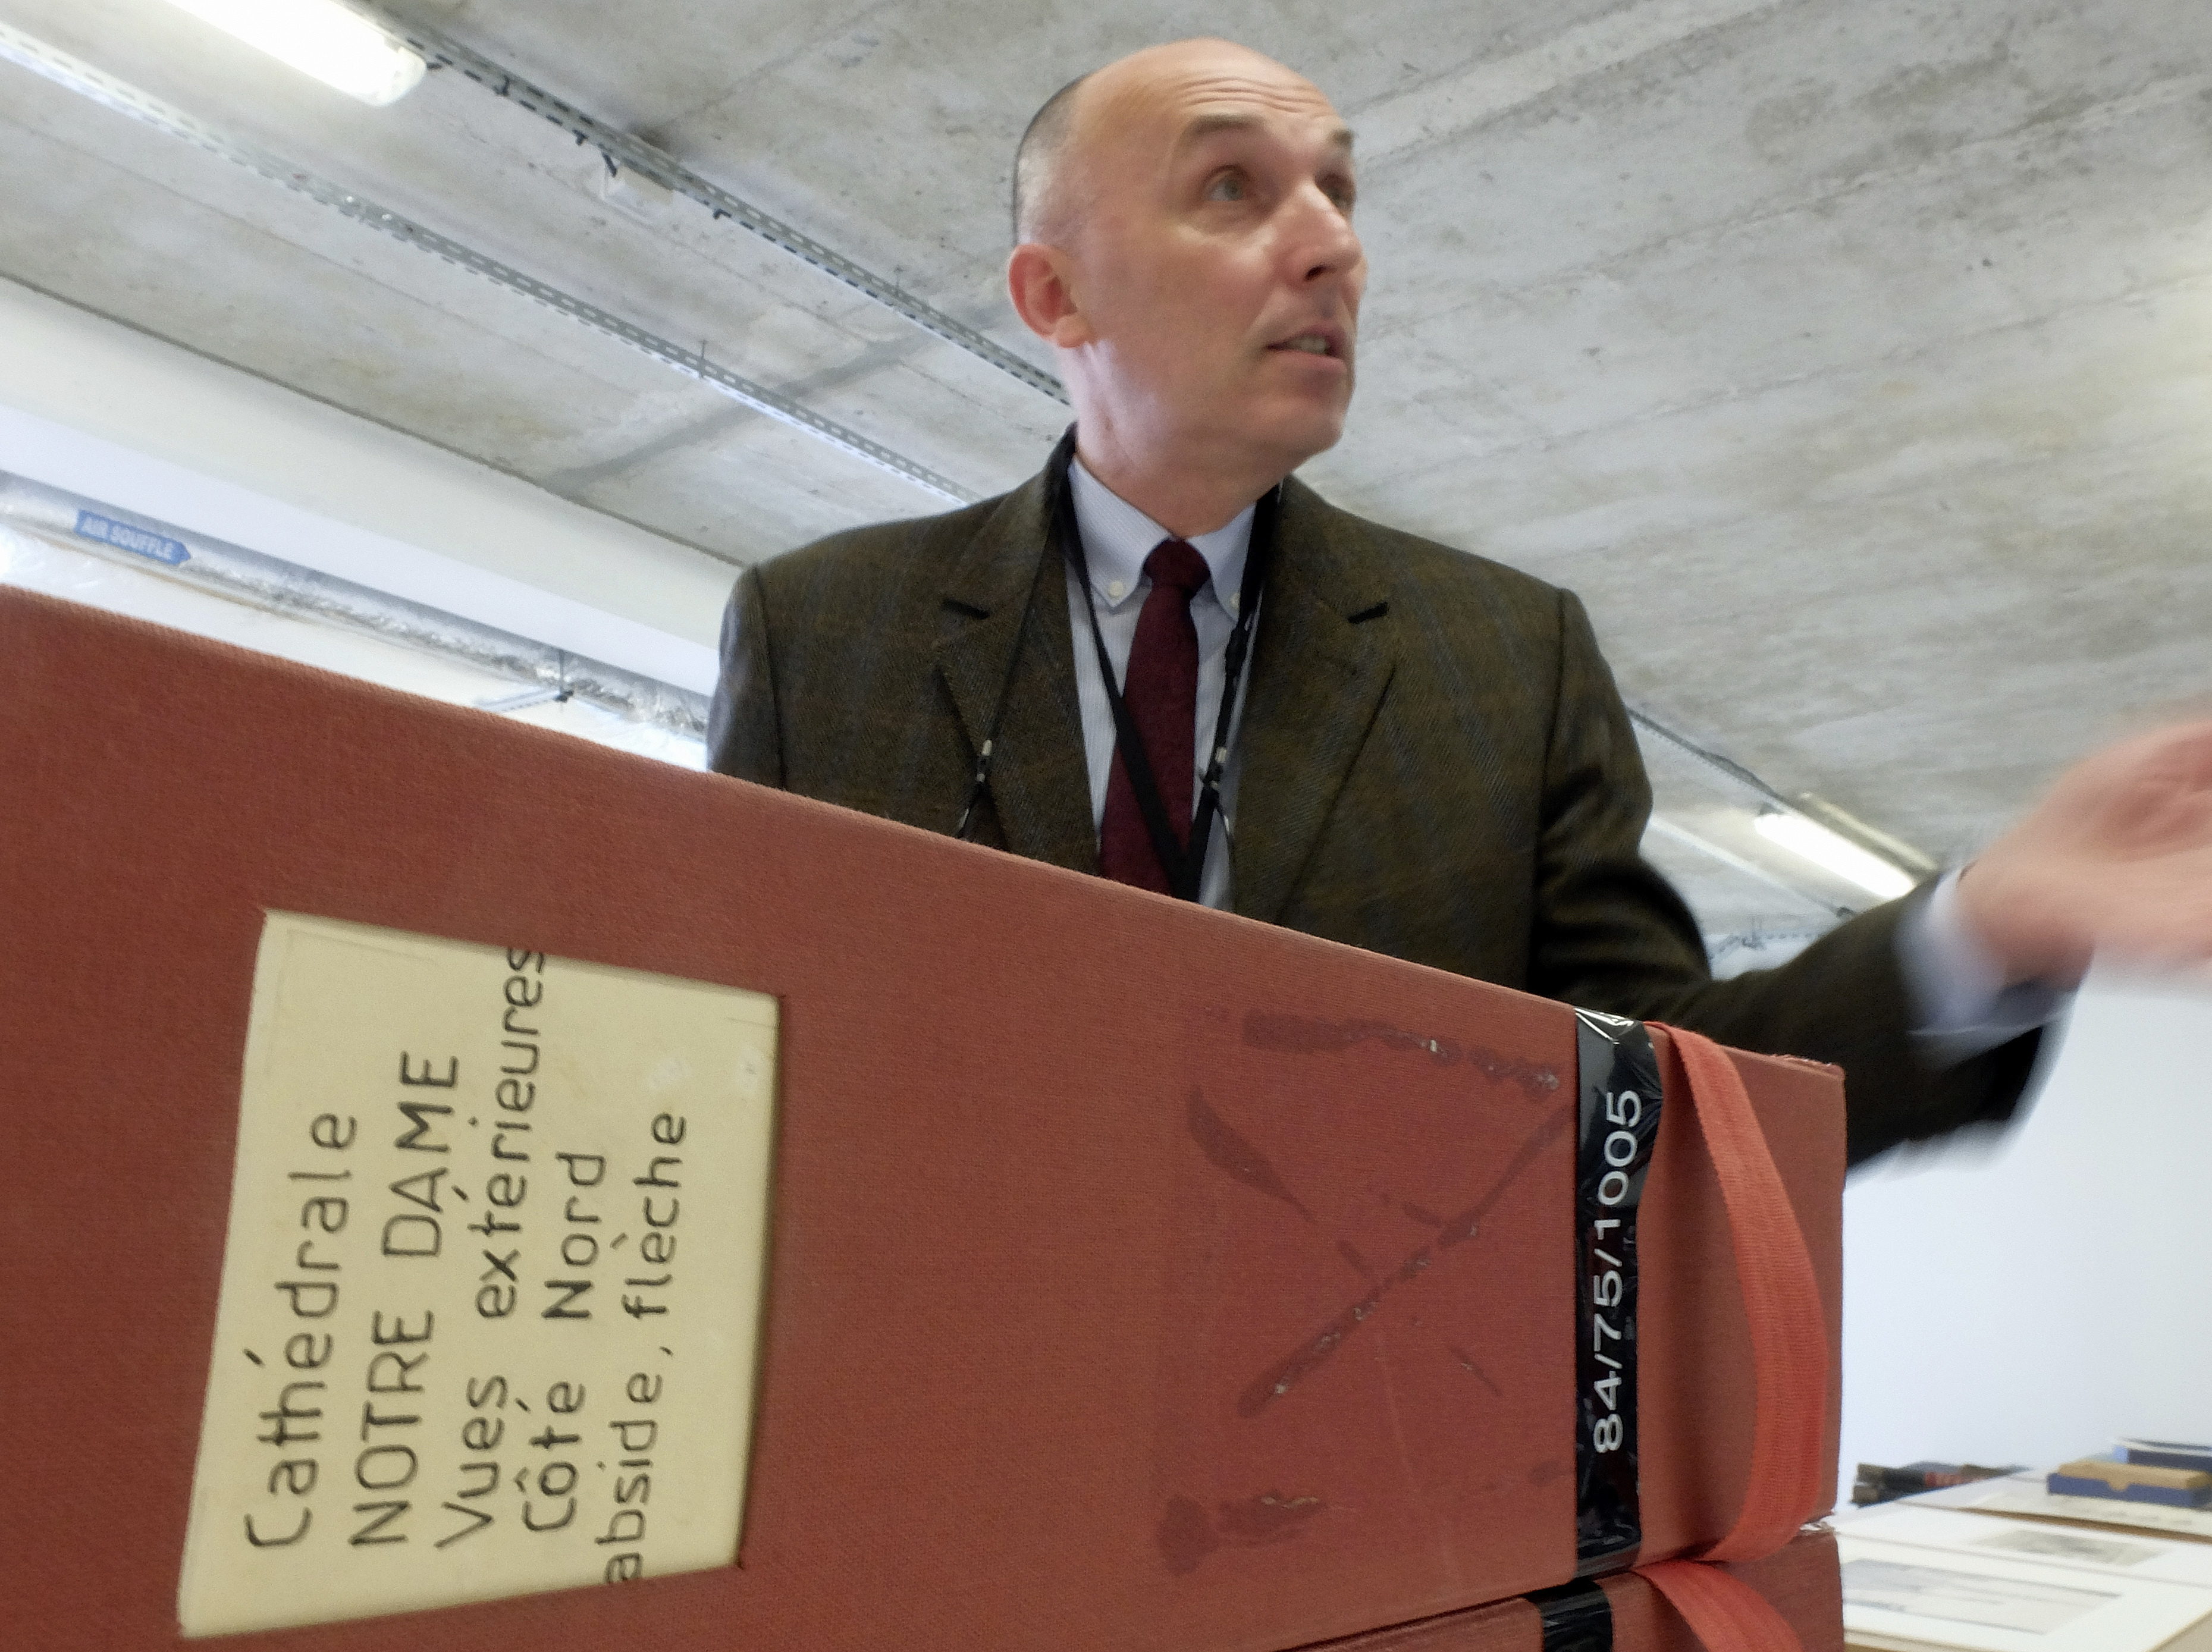 Jean-Charles Forgeret poses with files related to Notre Dame cathedral in Charenton le Pont, outside Paris, Thursday, April 18, 2019. The reconstruction of Paris' Notre Dame Cathedral will rely on part on extensive plans drawn up in the 19th century for its last big renovation. Forgeret noted that the last restoration took 20 years, and cast doubt on the French president's 5-year deadline on fixing Notre Dame this time. (AP Photo/Nicolas Garriga)